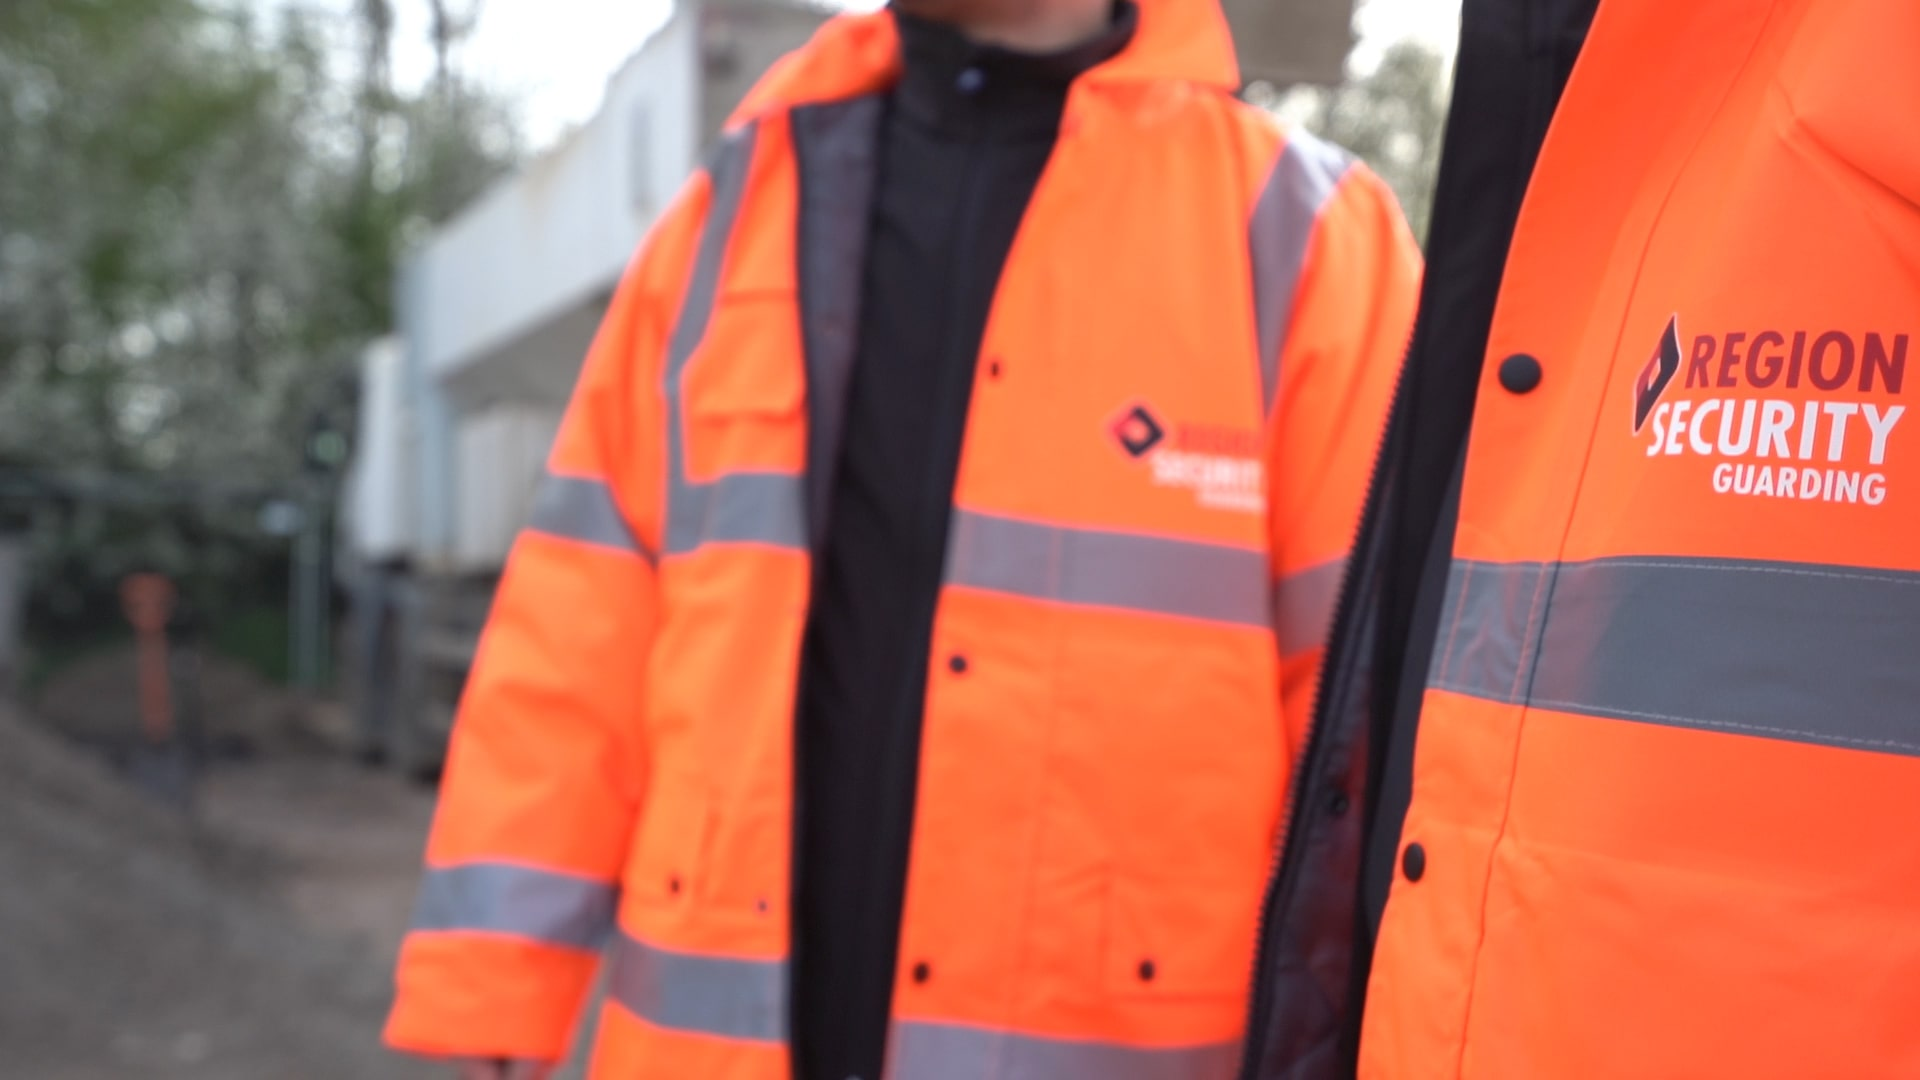 Construction security in sheffield